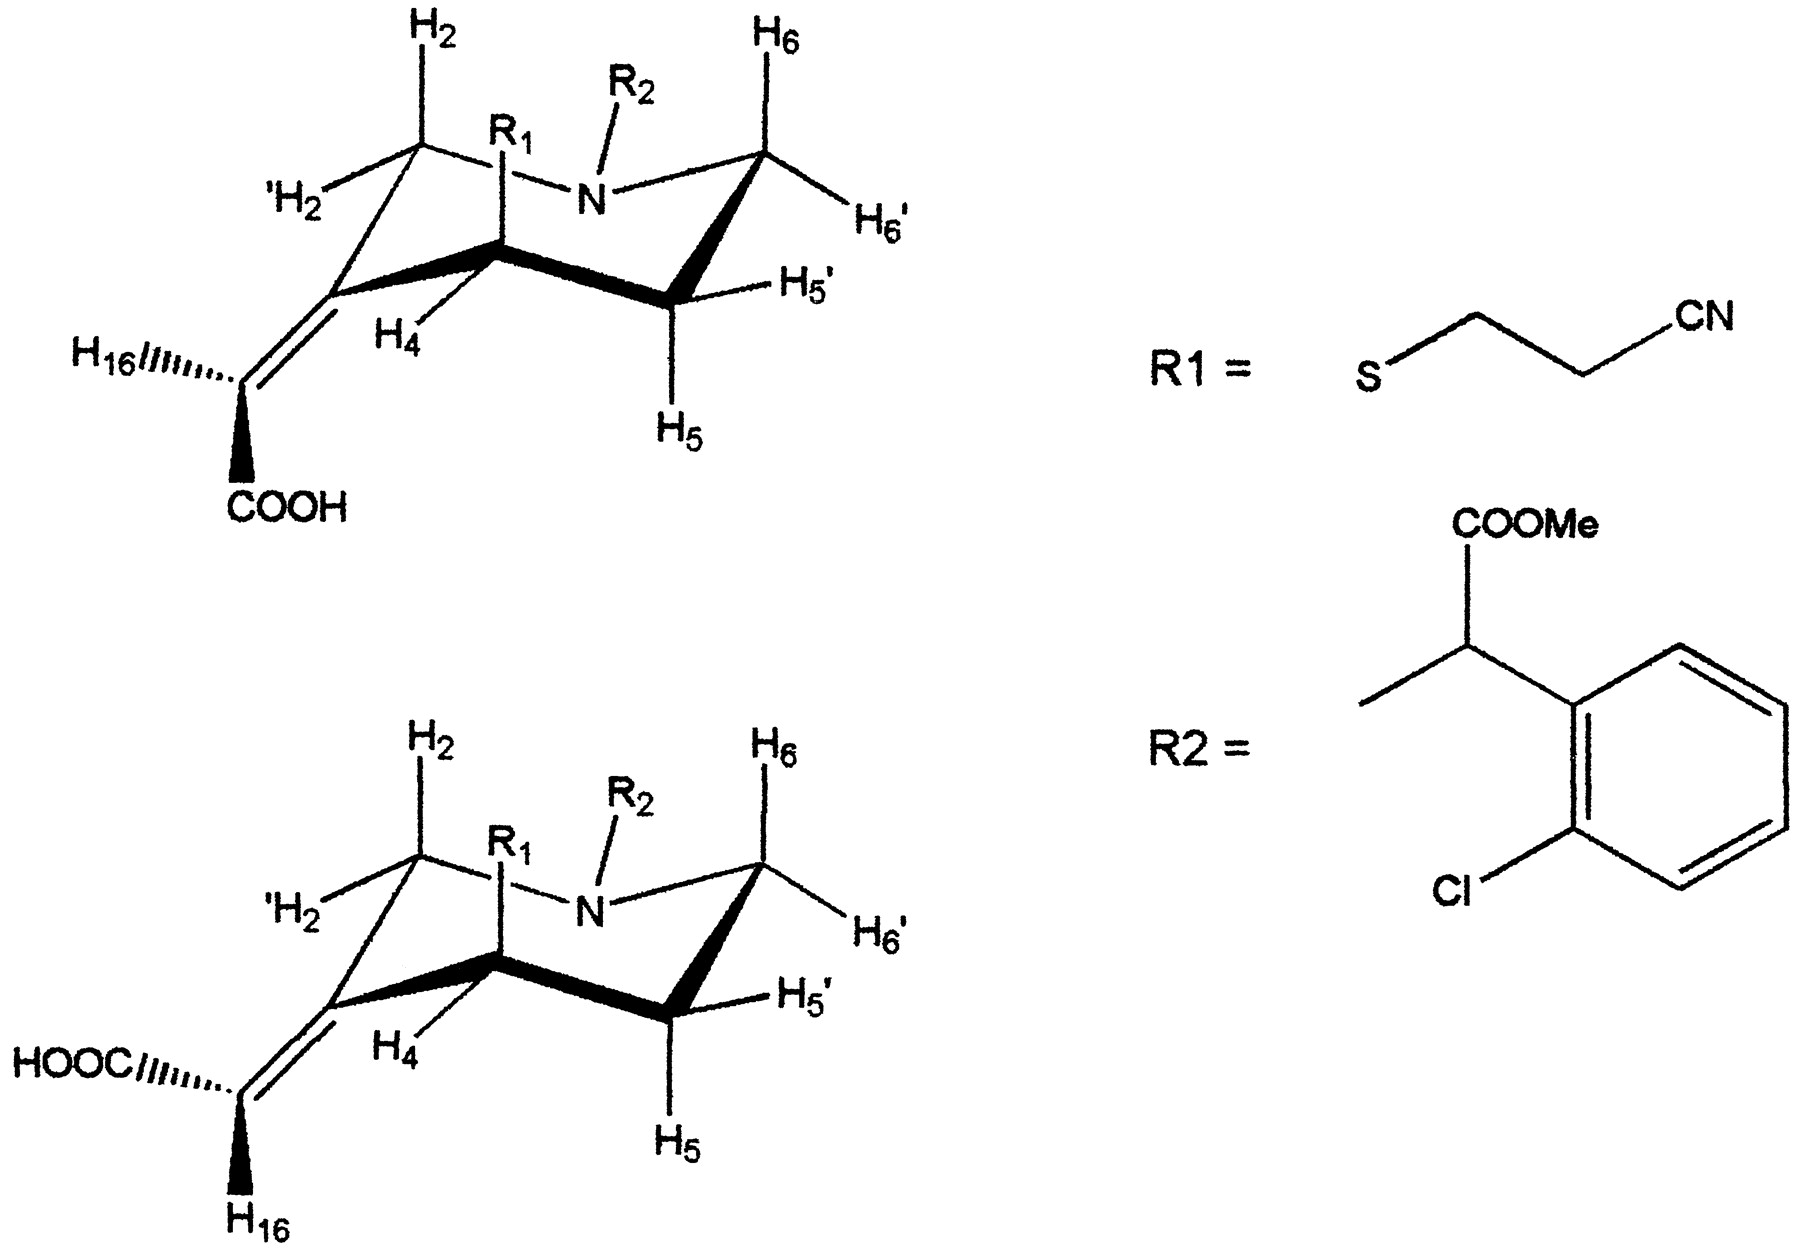 Structure And Stereochemistry Of The Active Metabolite Of Clopidogrel